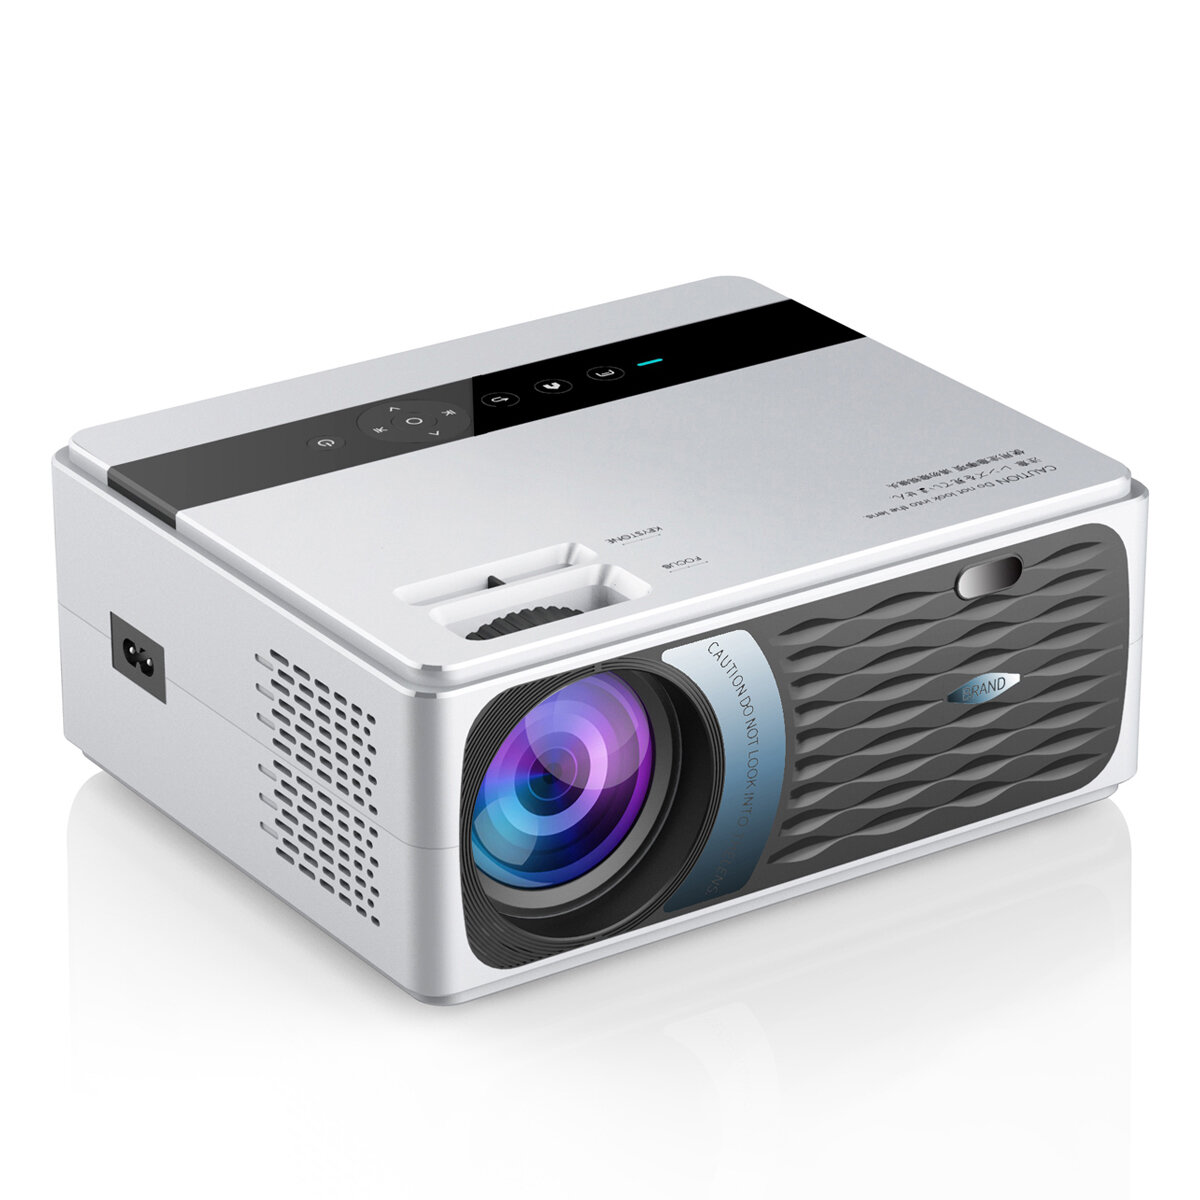 YJMOYE YJ600 LCD Projector 3800 Lumens Support 1080P Smart Wireless bluetooth LED Projector Home Theater WiFi Version